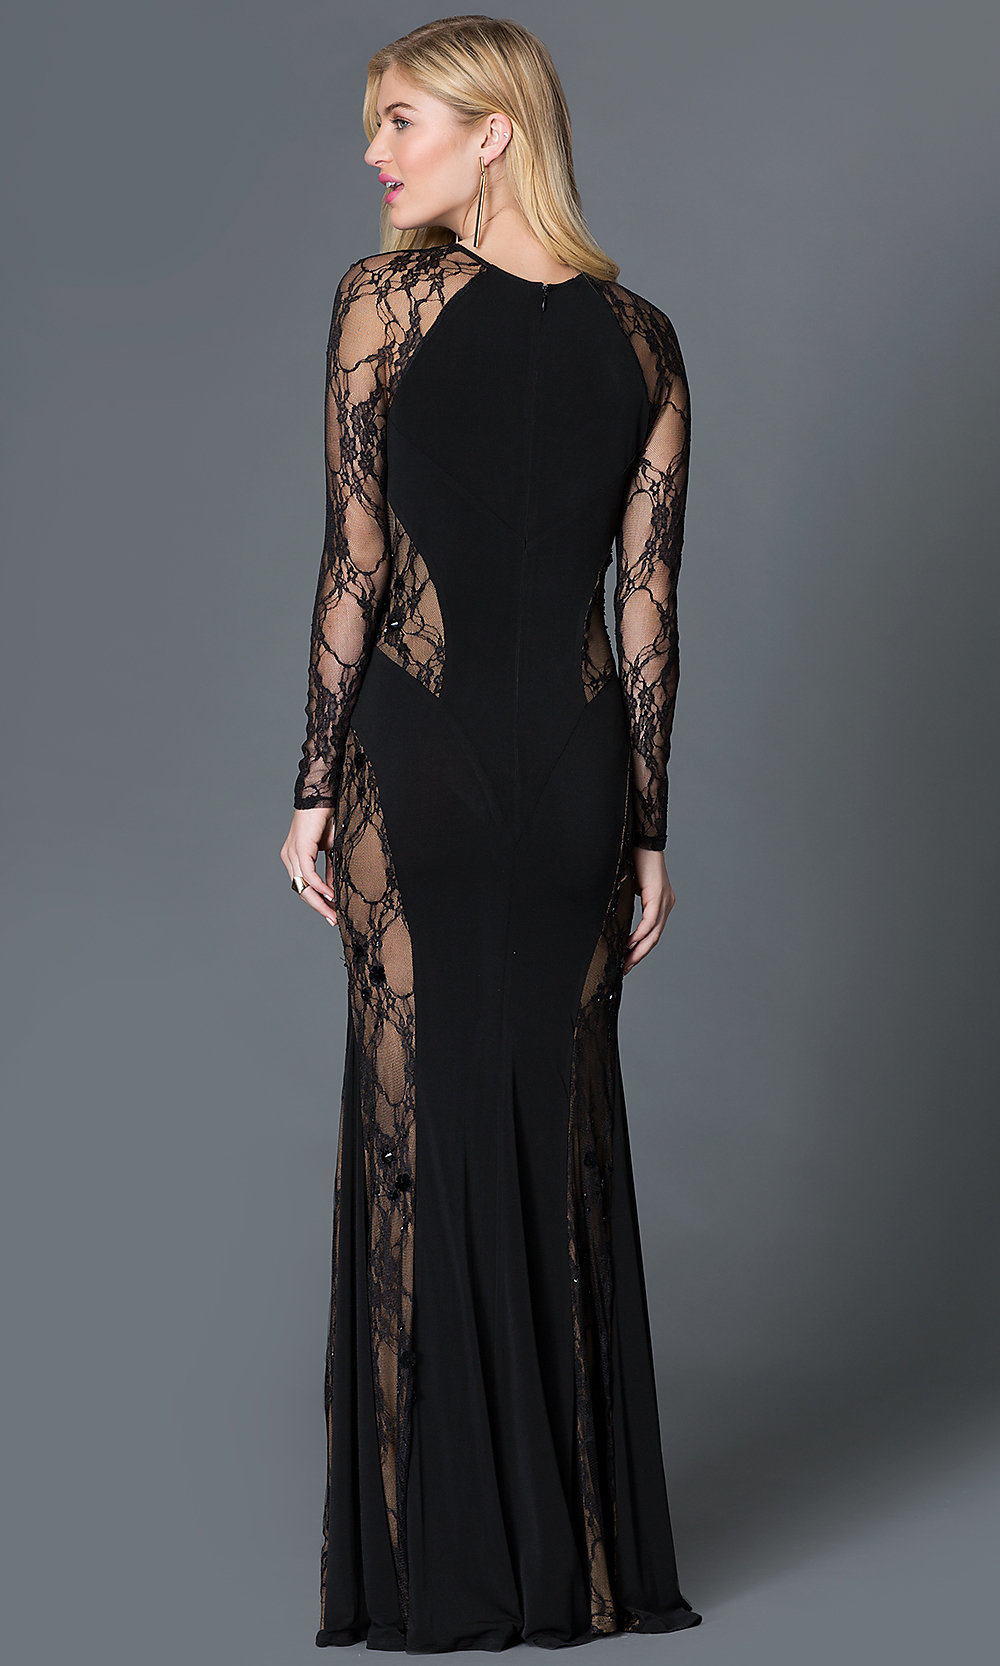 Elegant ... Long Sleeve Lace Illusion Thigh Slit Floor Length Dress Style: CQ .  Hover To Zoom